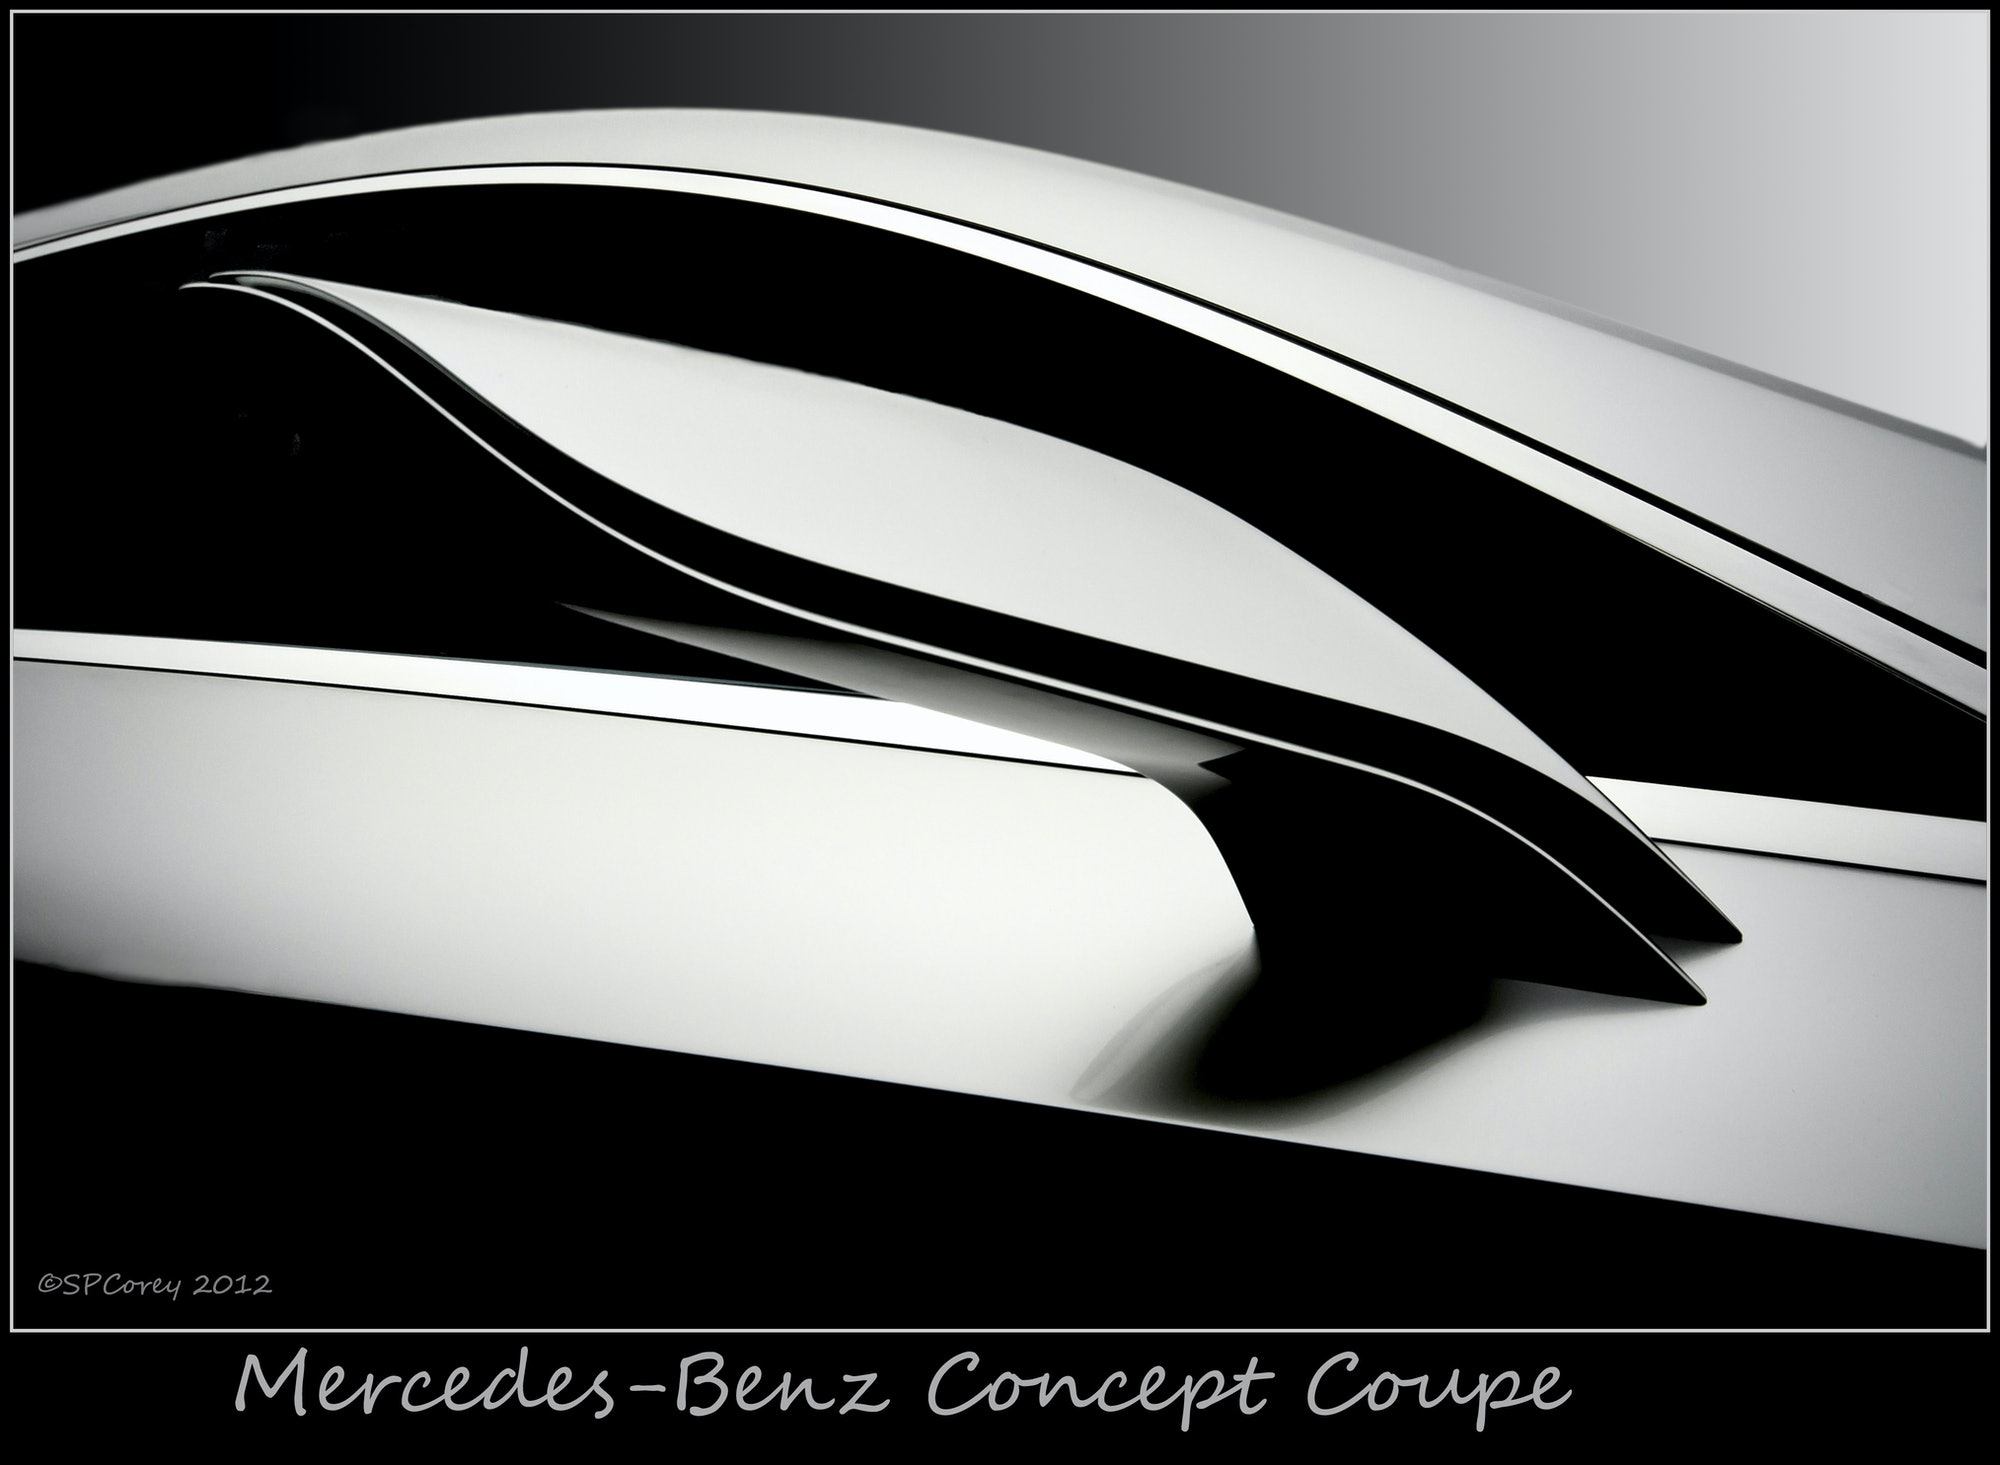 Prominent line design, even for a mirror, shows the artistic freedom available to the designers of a concept car prior to production. I must have taken 16 images just of this door mirror as an example of the beautiful lines that will, in time, replace our box shaped cars produced today. Image taken at the Pebble Beach Concours d'Elegance, 2012. Thanks for viewing.500px.com/stevecorey